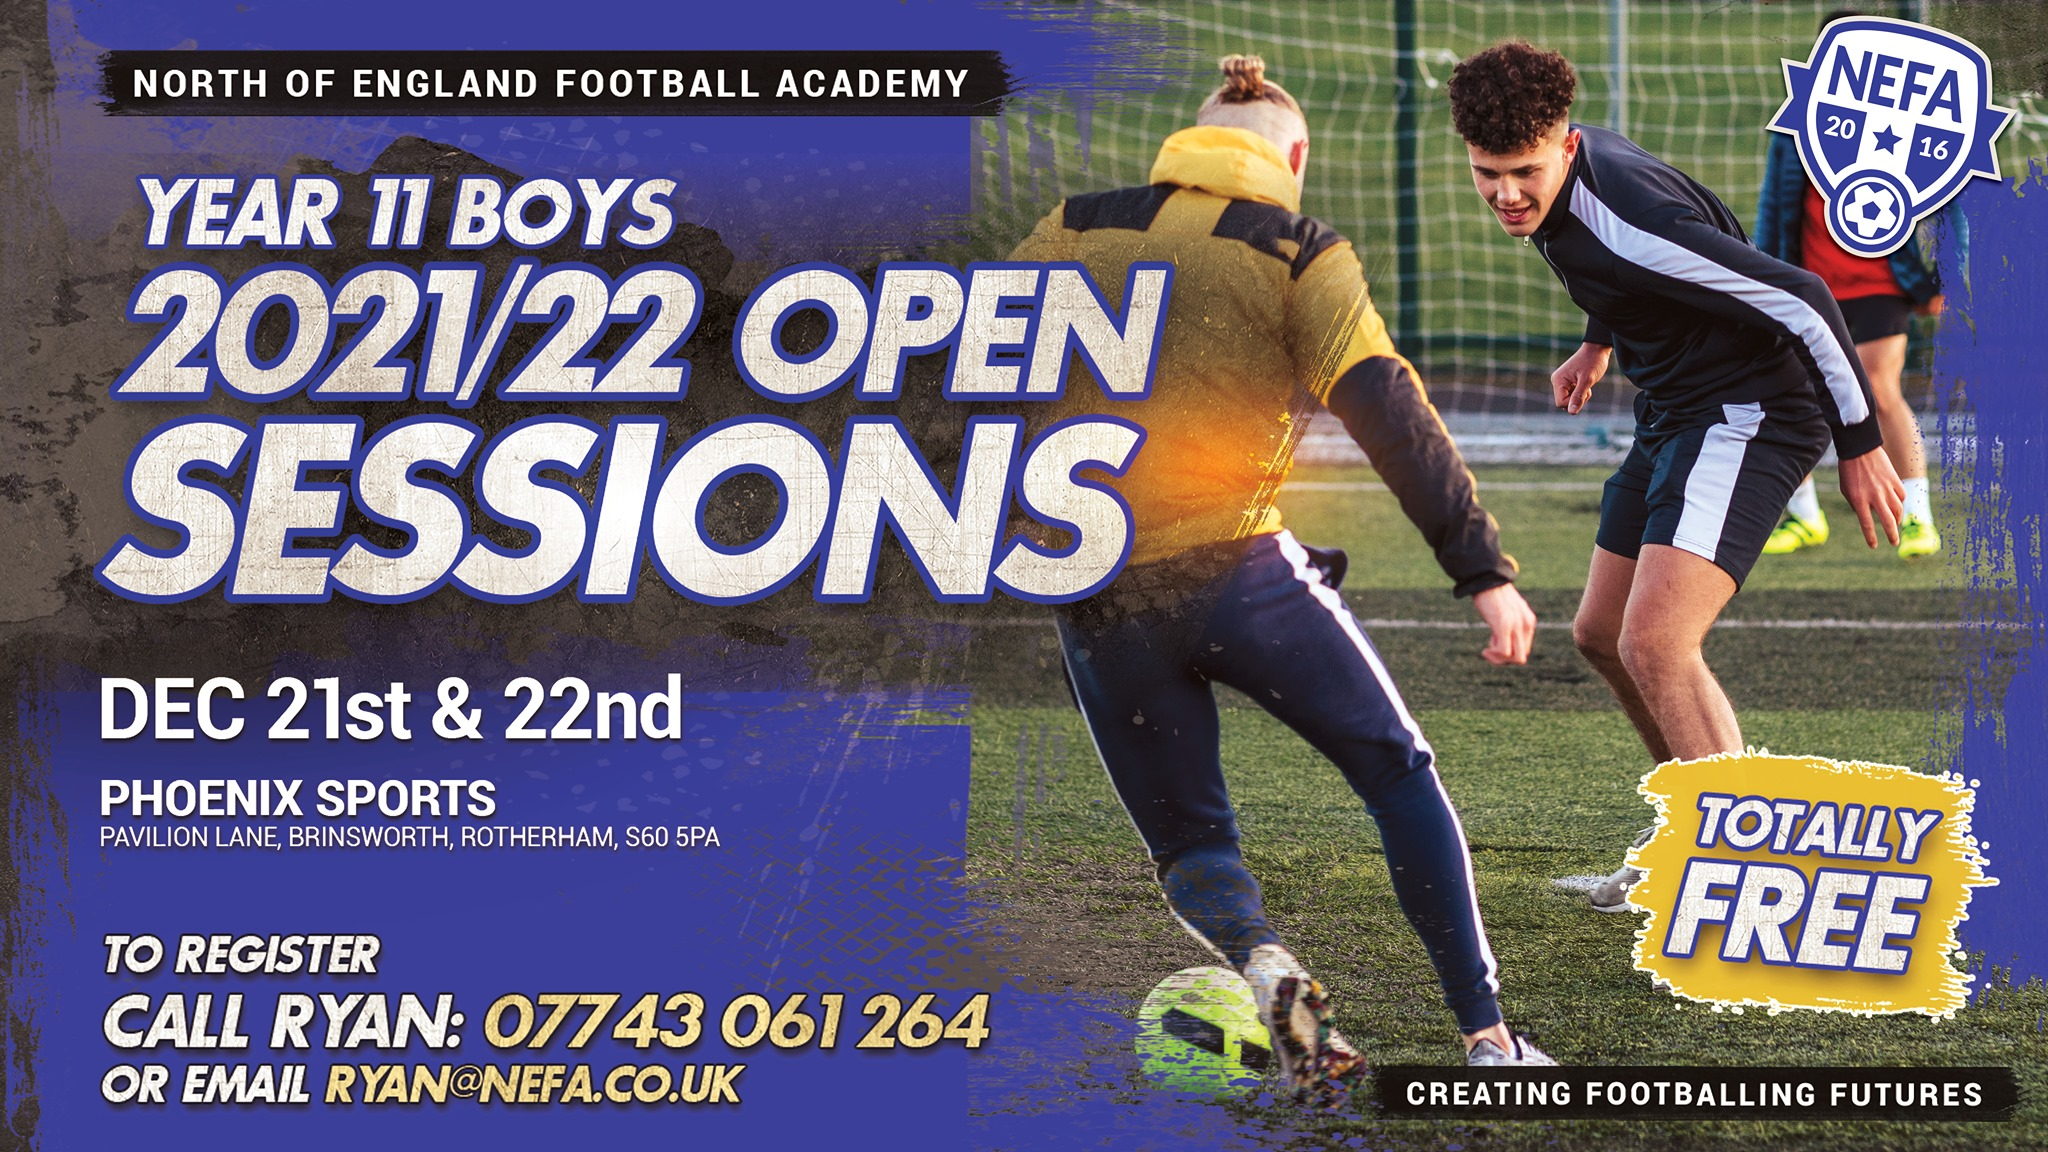 2021/22 Programme Open Session